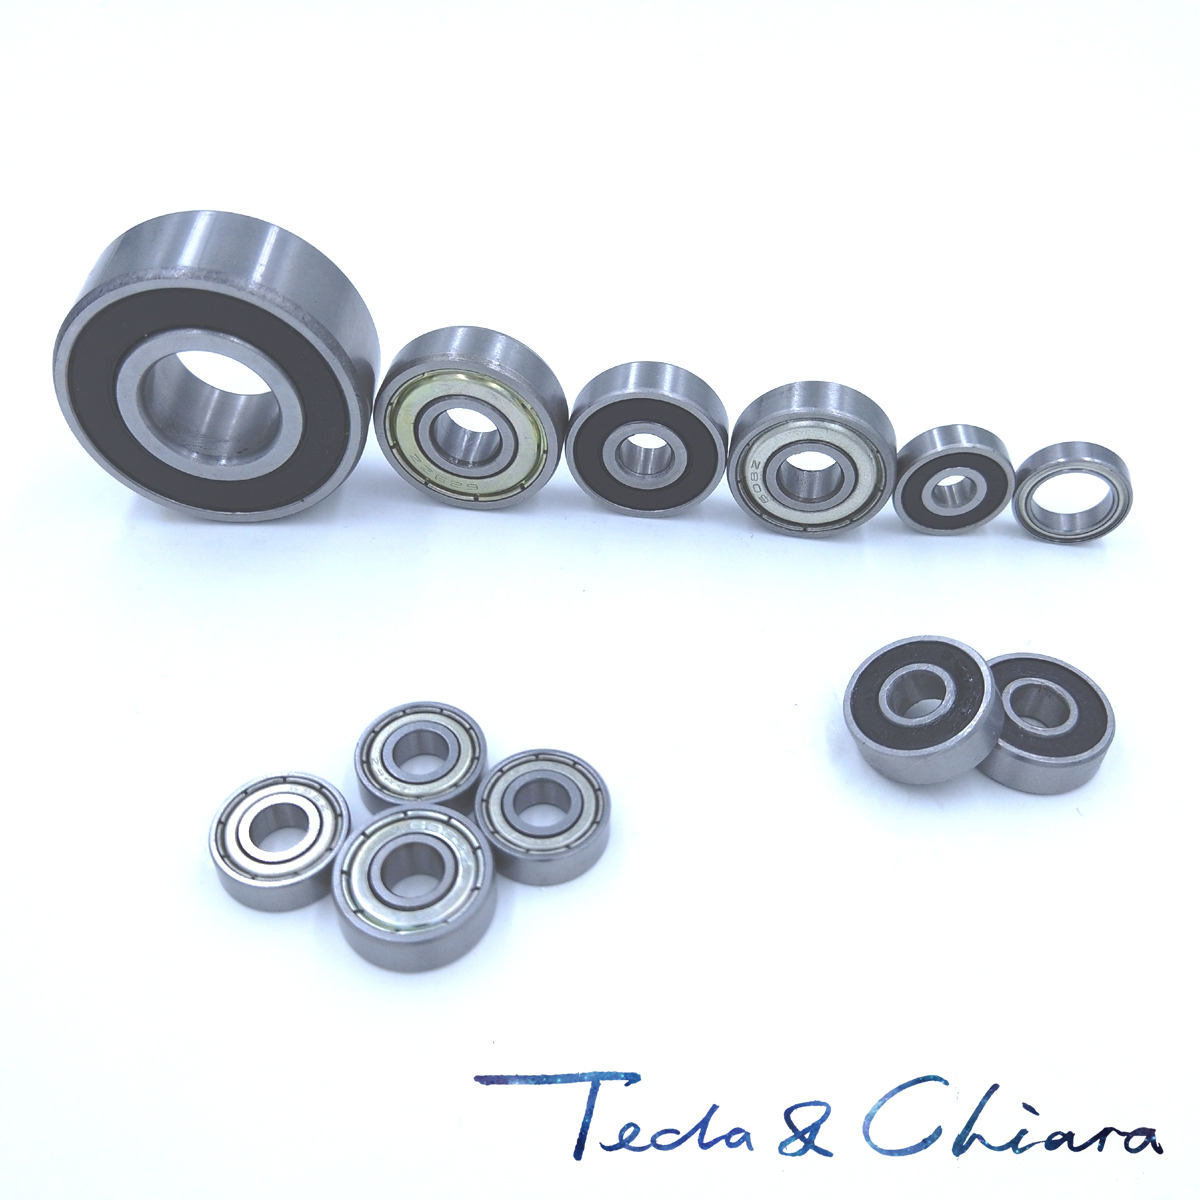 10Pcs 6800 <font><b>6800ZZ</b></font> 6800RS 6800-2Z 6800Z 6800-2RS ZZ RS RZ 2RZ Deep Groove Ball Bearings 10 x 19 x 5mm High Quality image